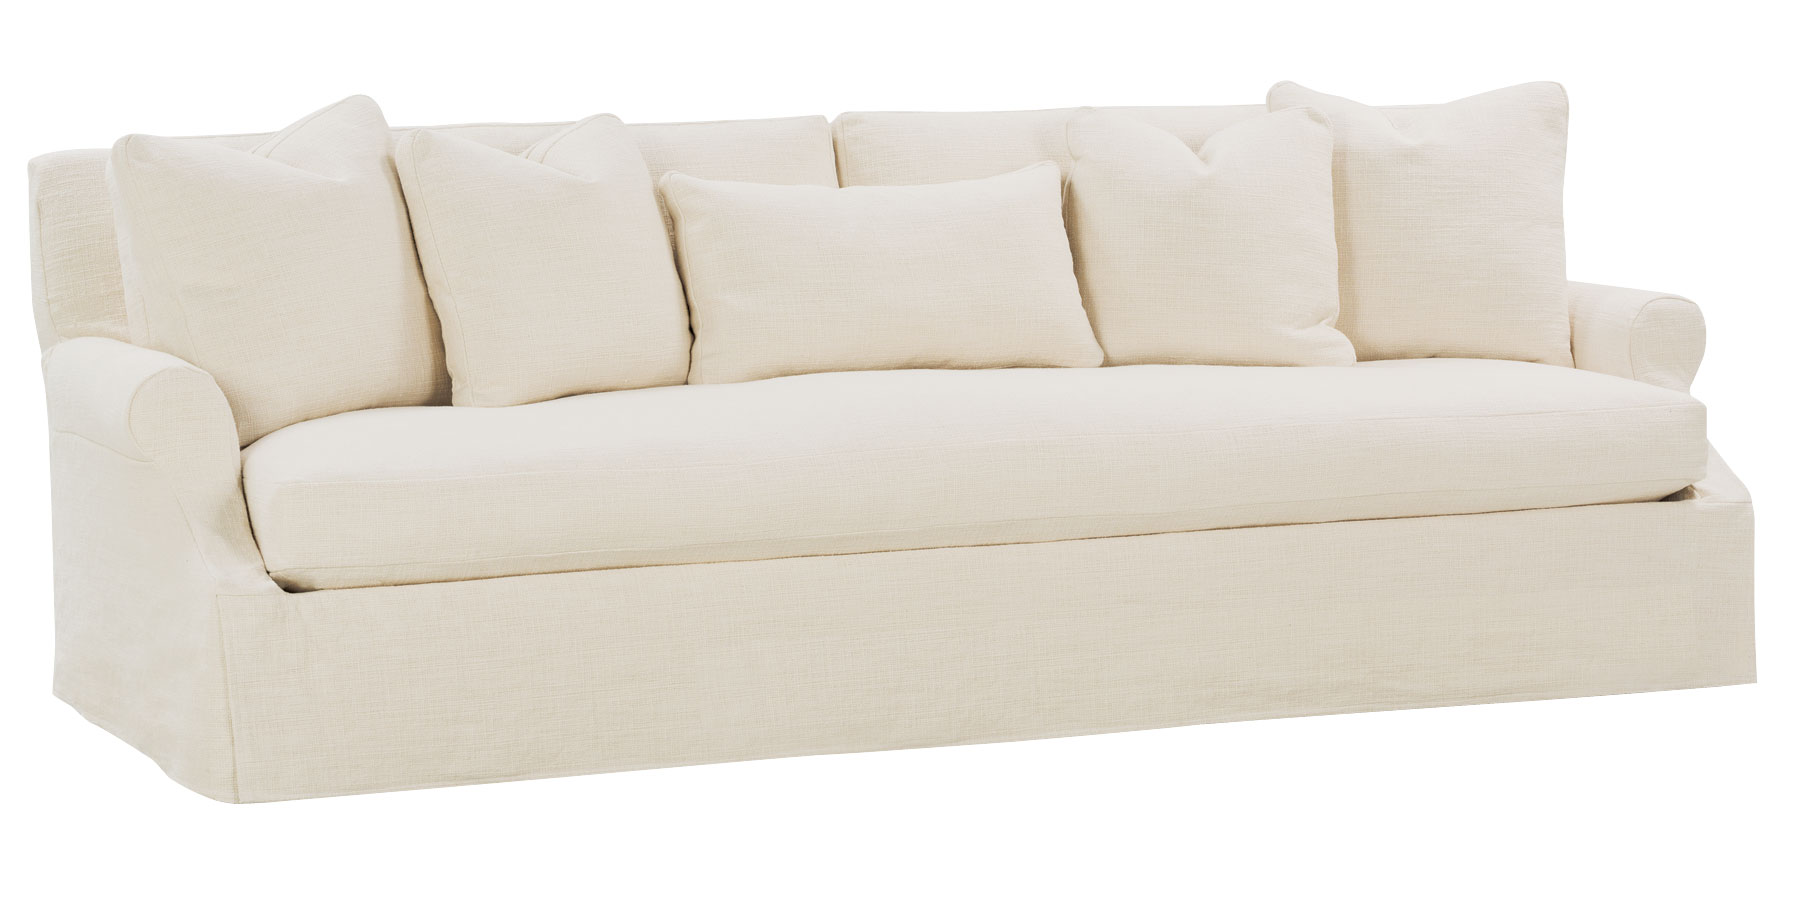 sofa slipcovers three cushions review ikea rp slipcovered 3 lenghts select-a-size bench seat extra long ...